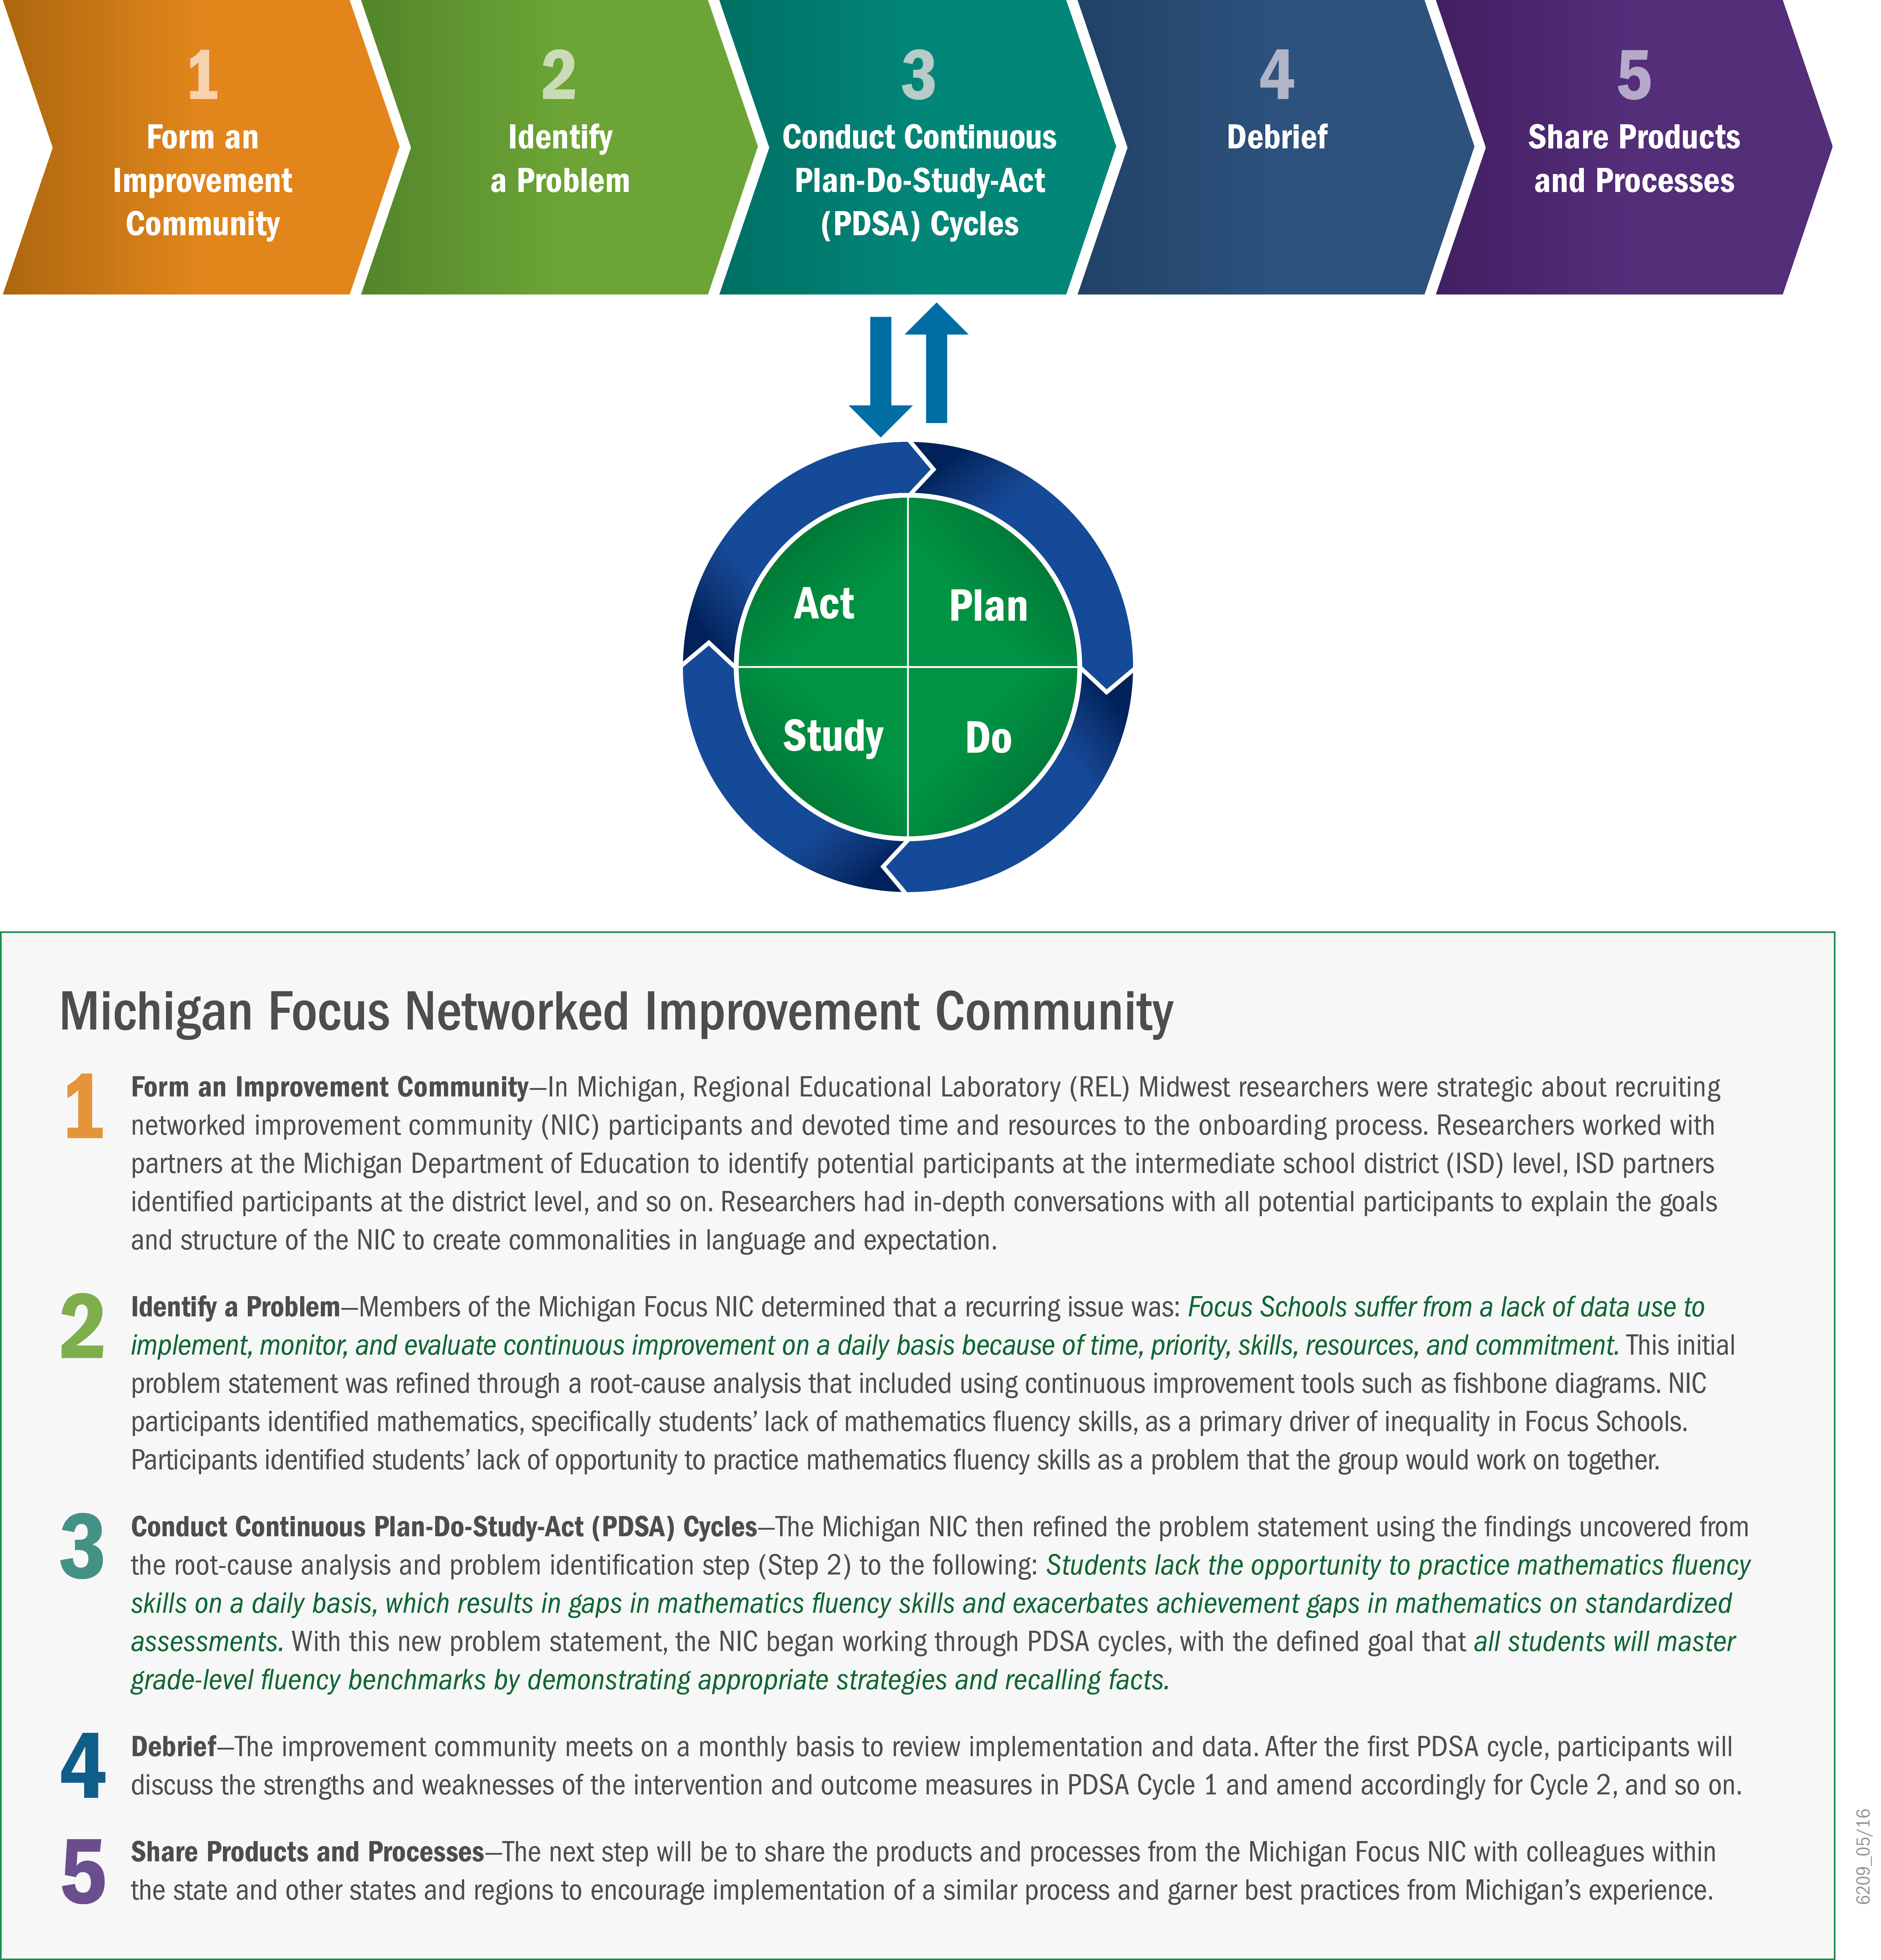 Michigan Focus Networked Improvement Community graphic